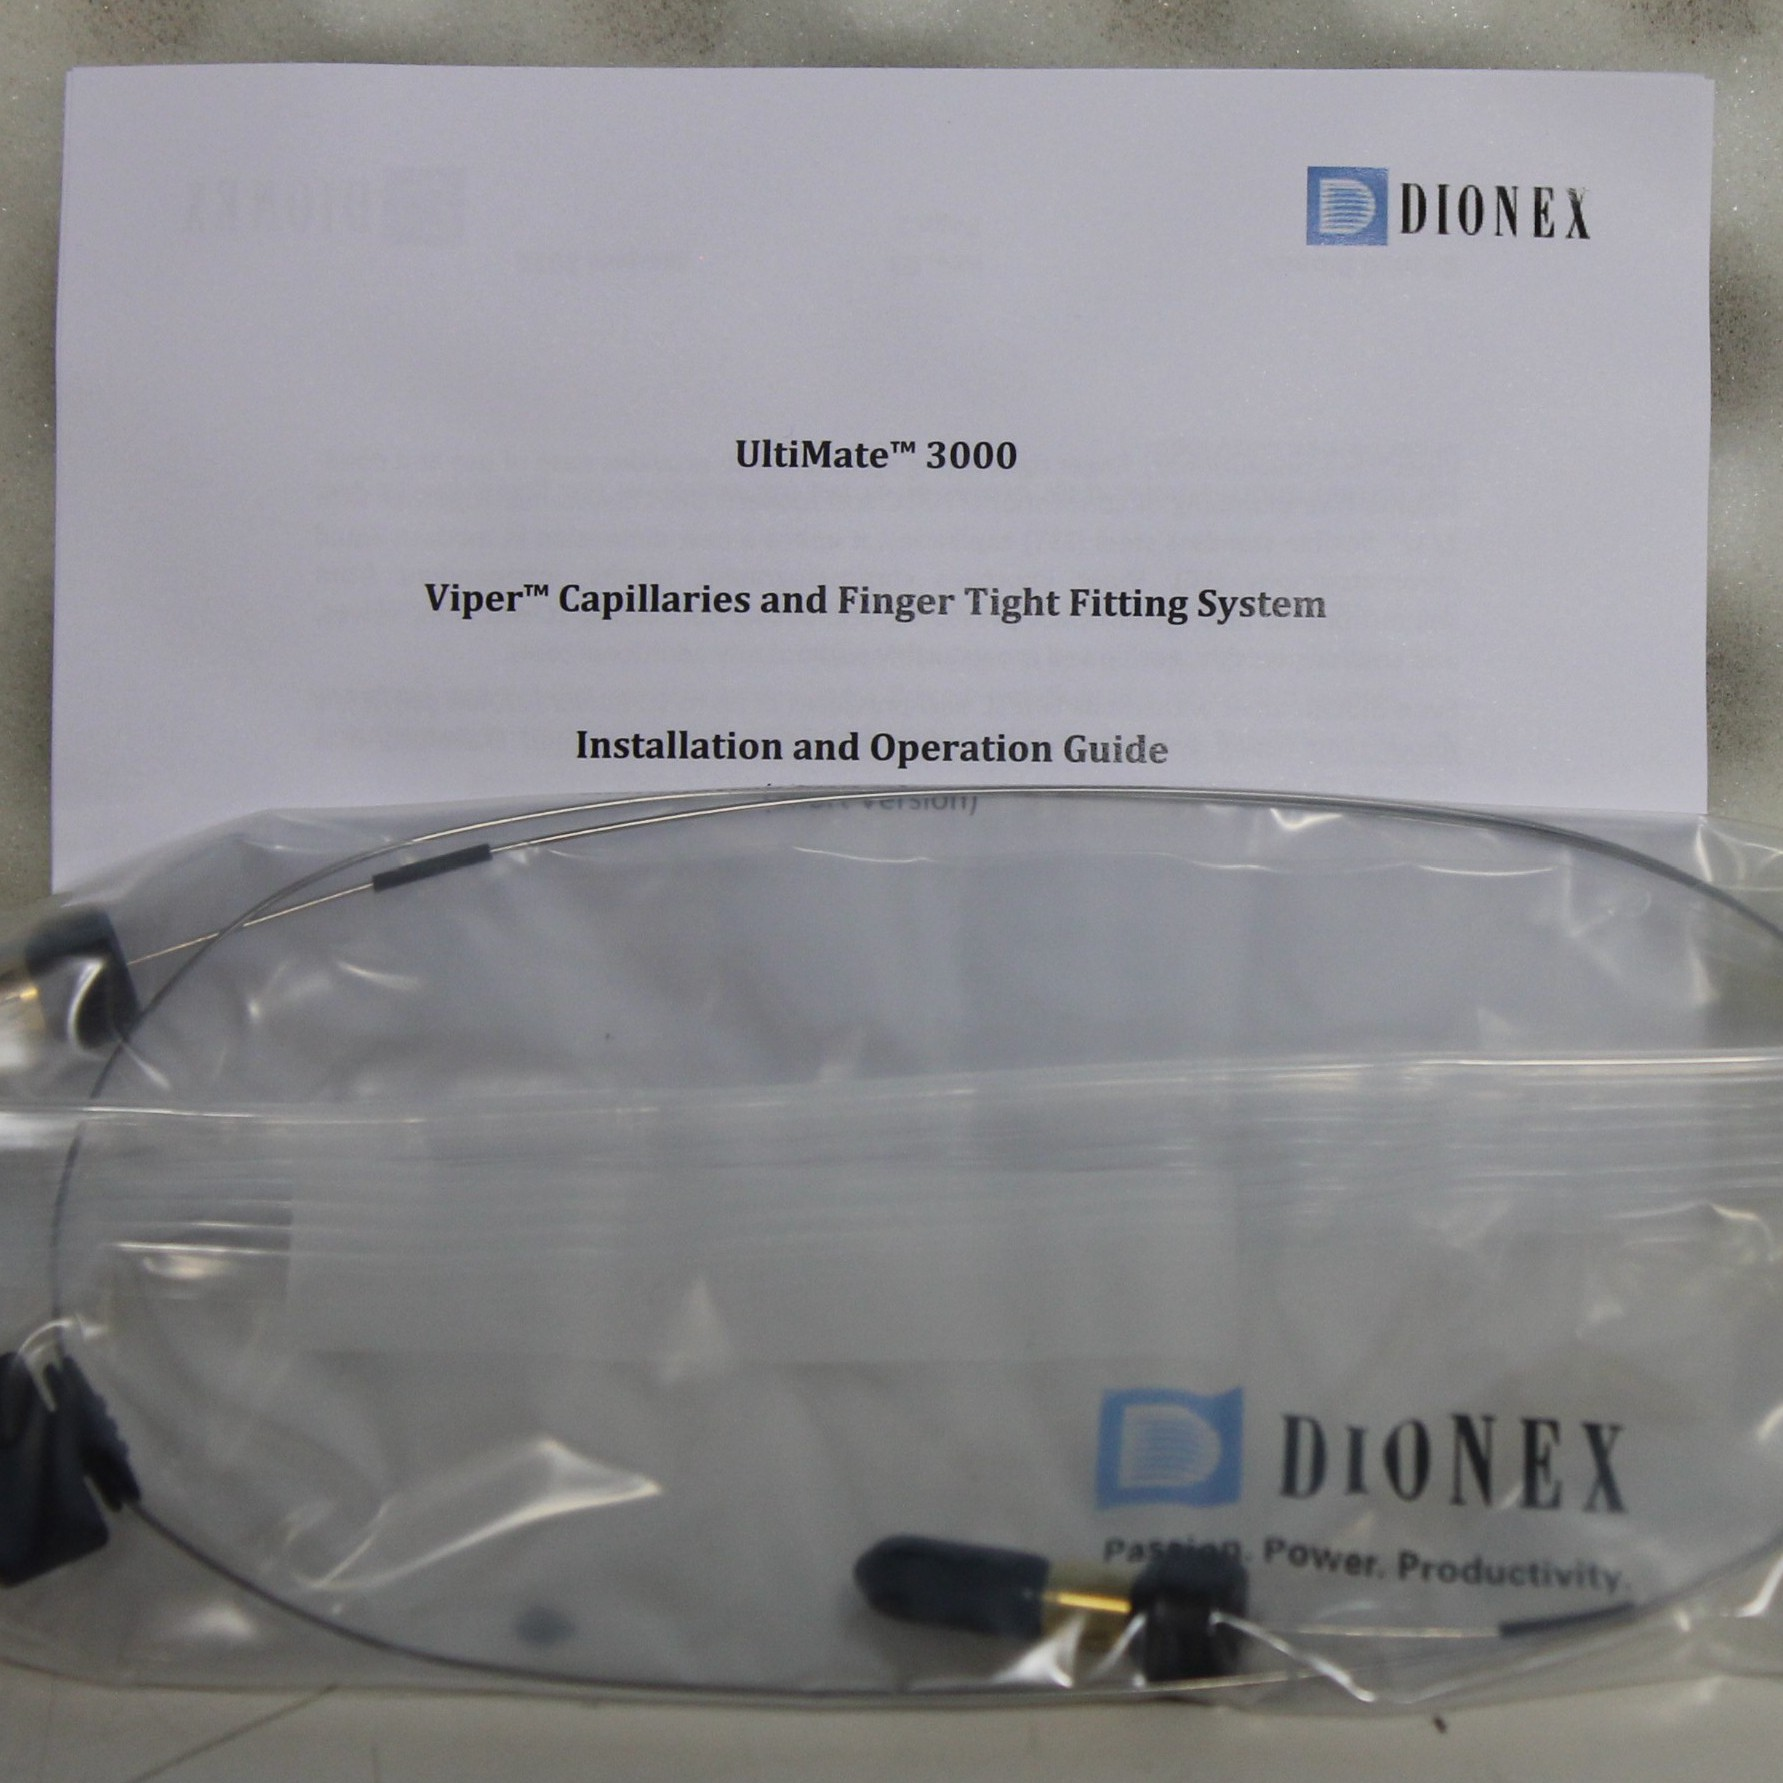 Dionex Viper Capillaries and Finger Tight Fitting System Image